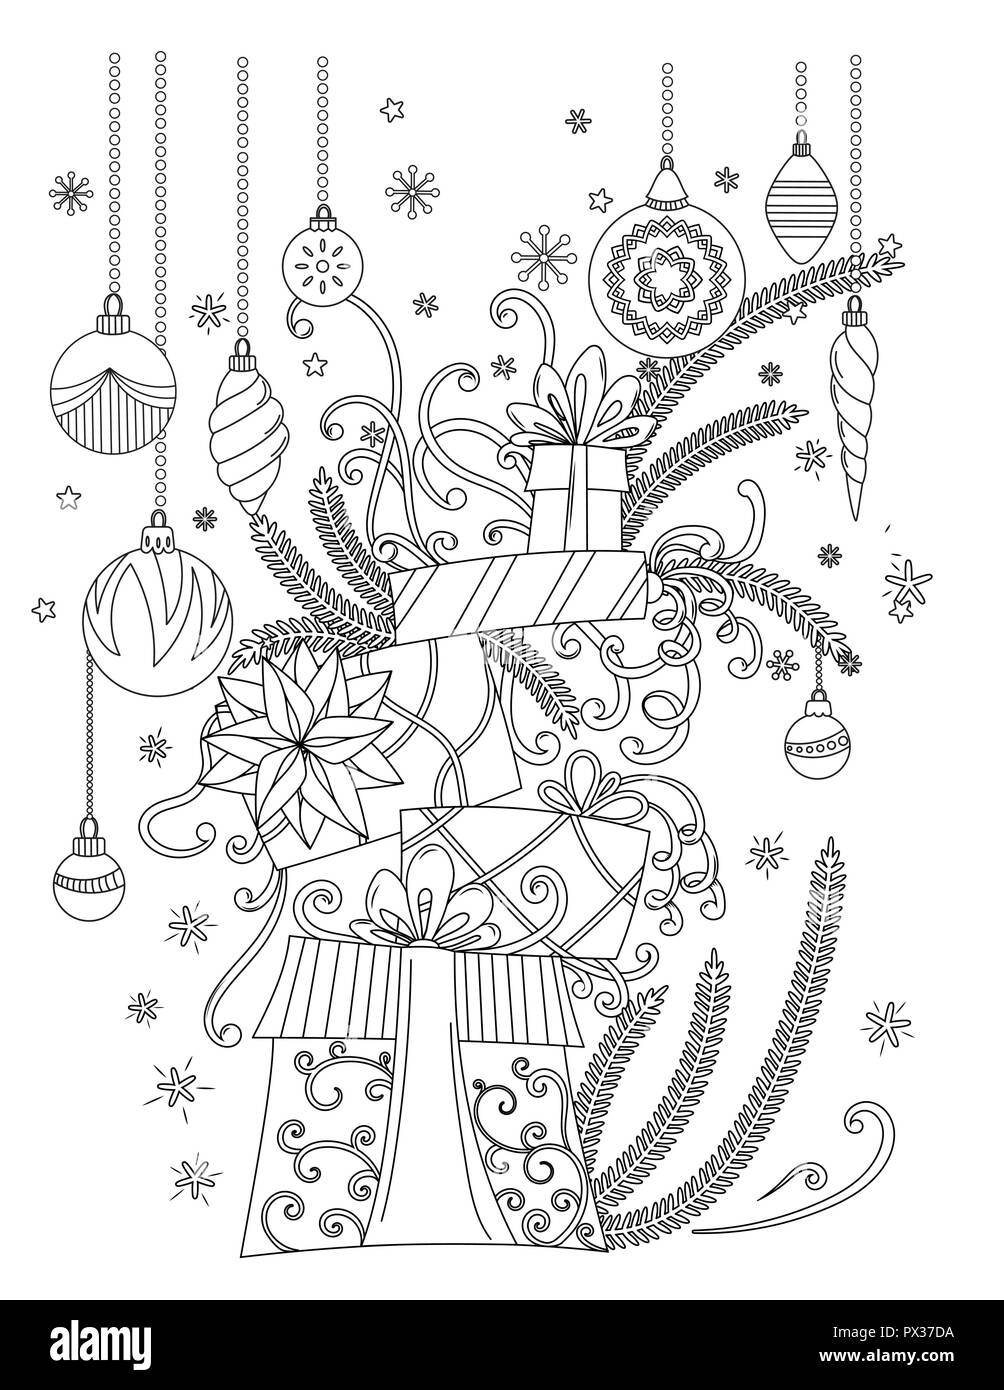 Garfield Coloring Pages | Christmas coloring pages, Halloween ... | 1390x1004